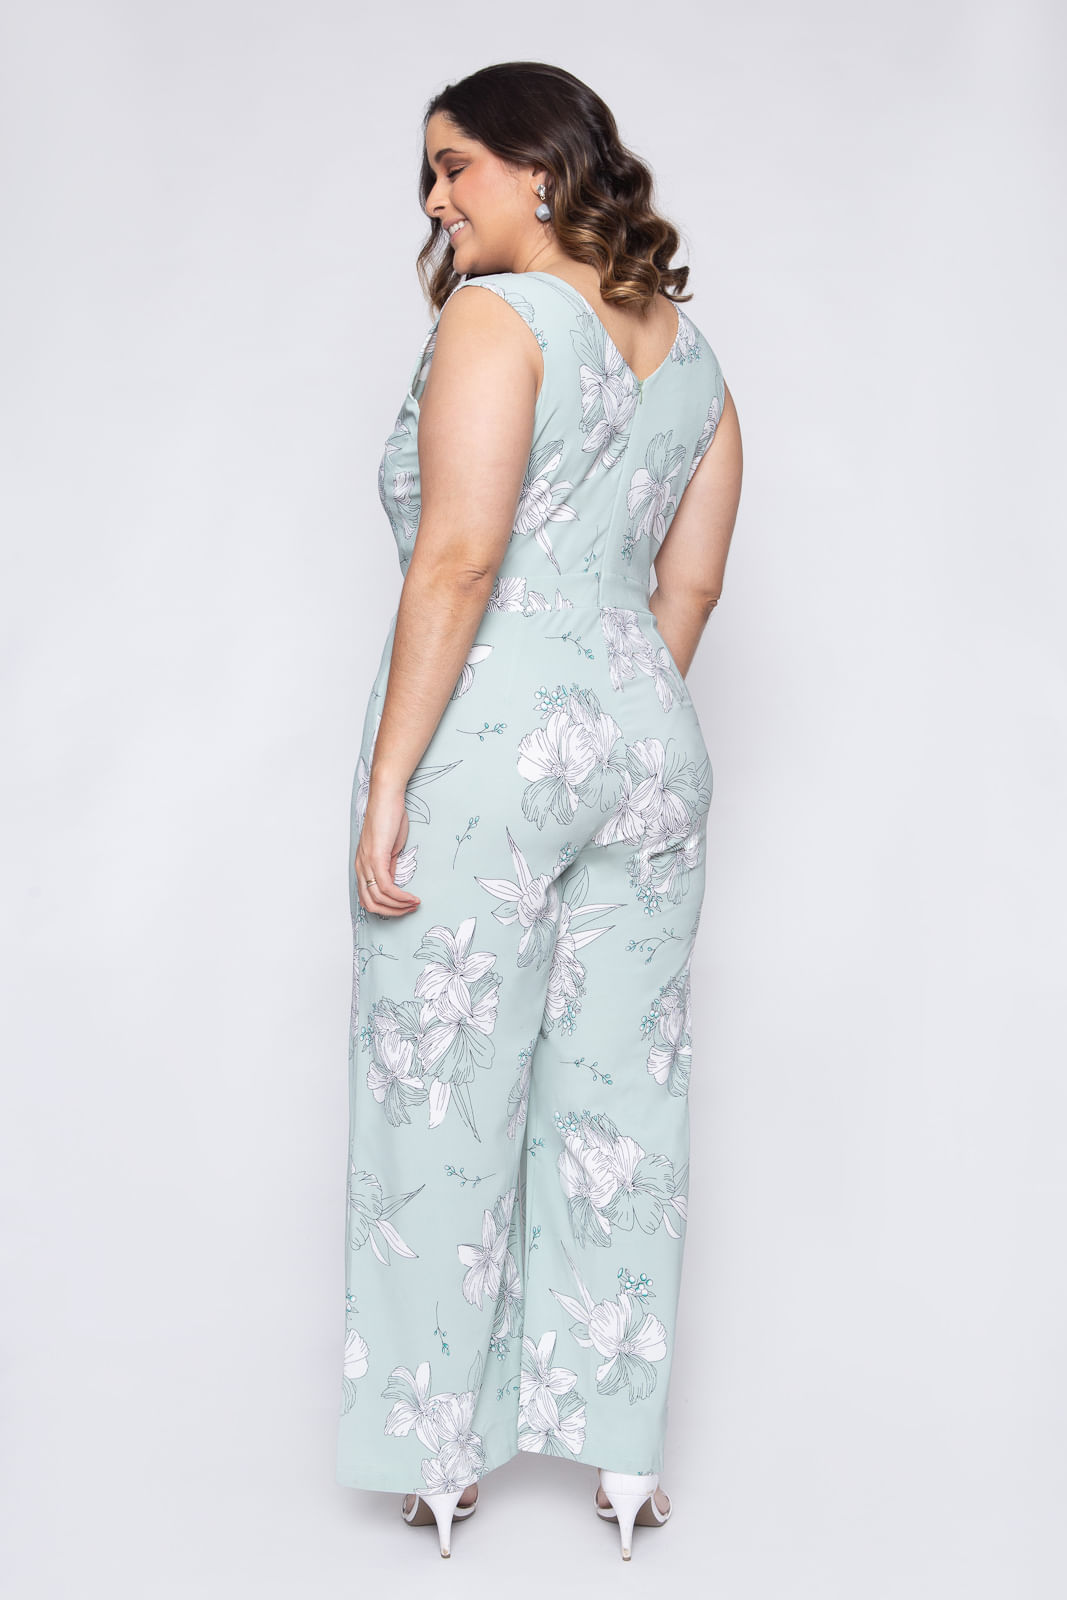 8332_Macacao_Plus_Size_Verde_Floral_4